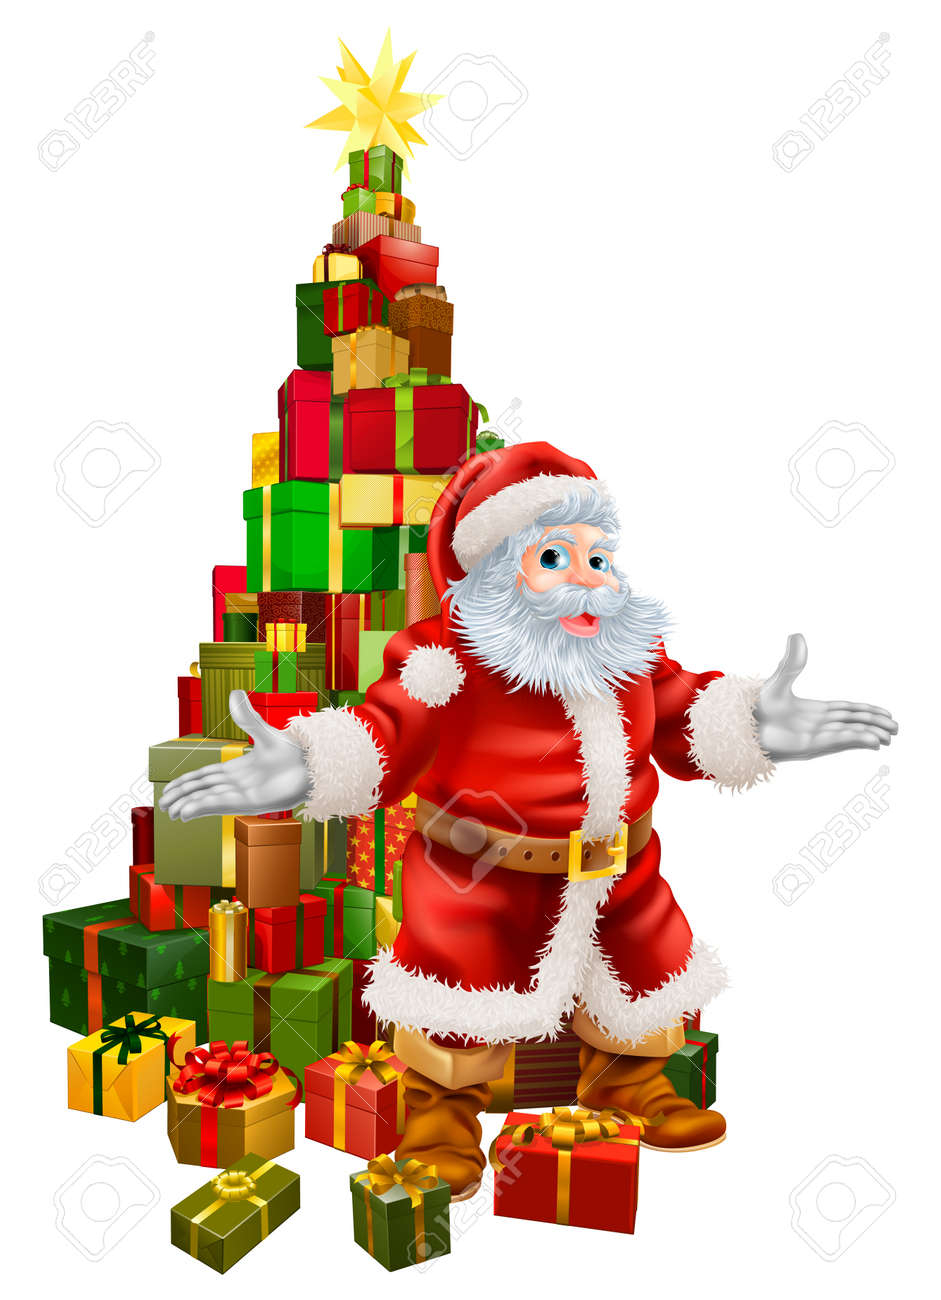 An illustration of happy Christmas Santa Claus with a large stack of presents or gifts in a Christmas tree shape with a star on top. Stock Vector - 16477130